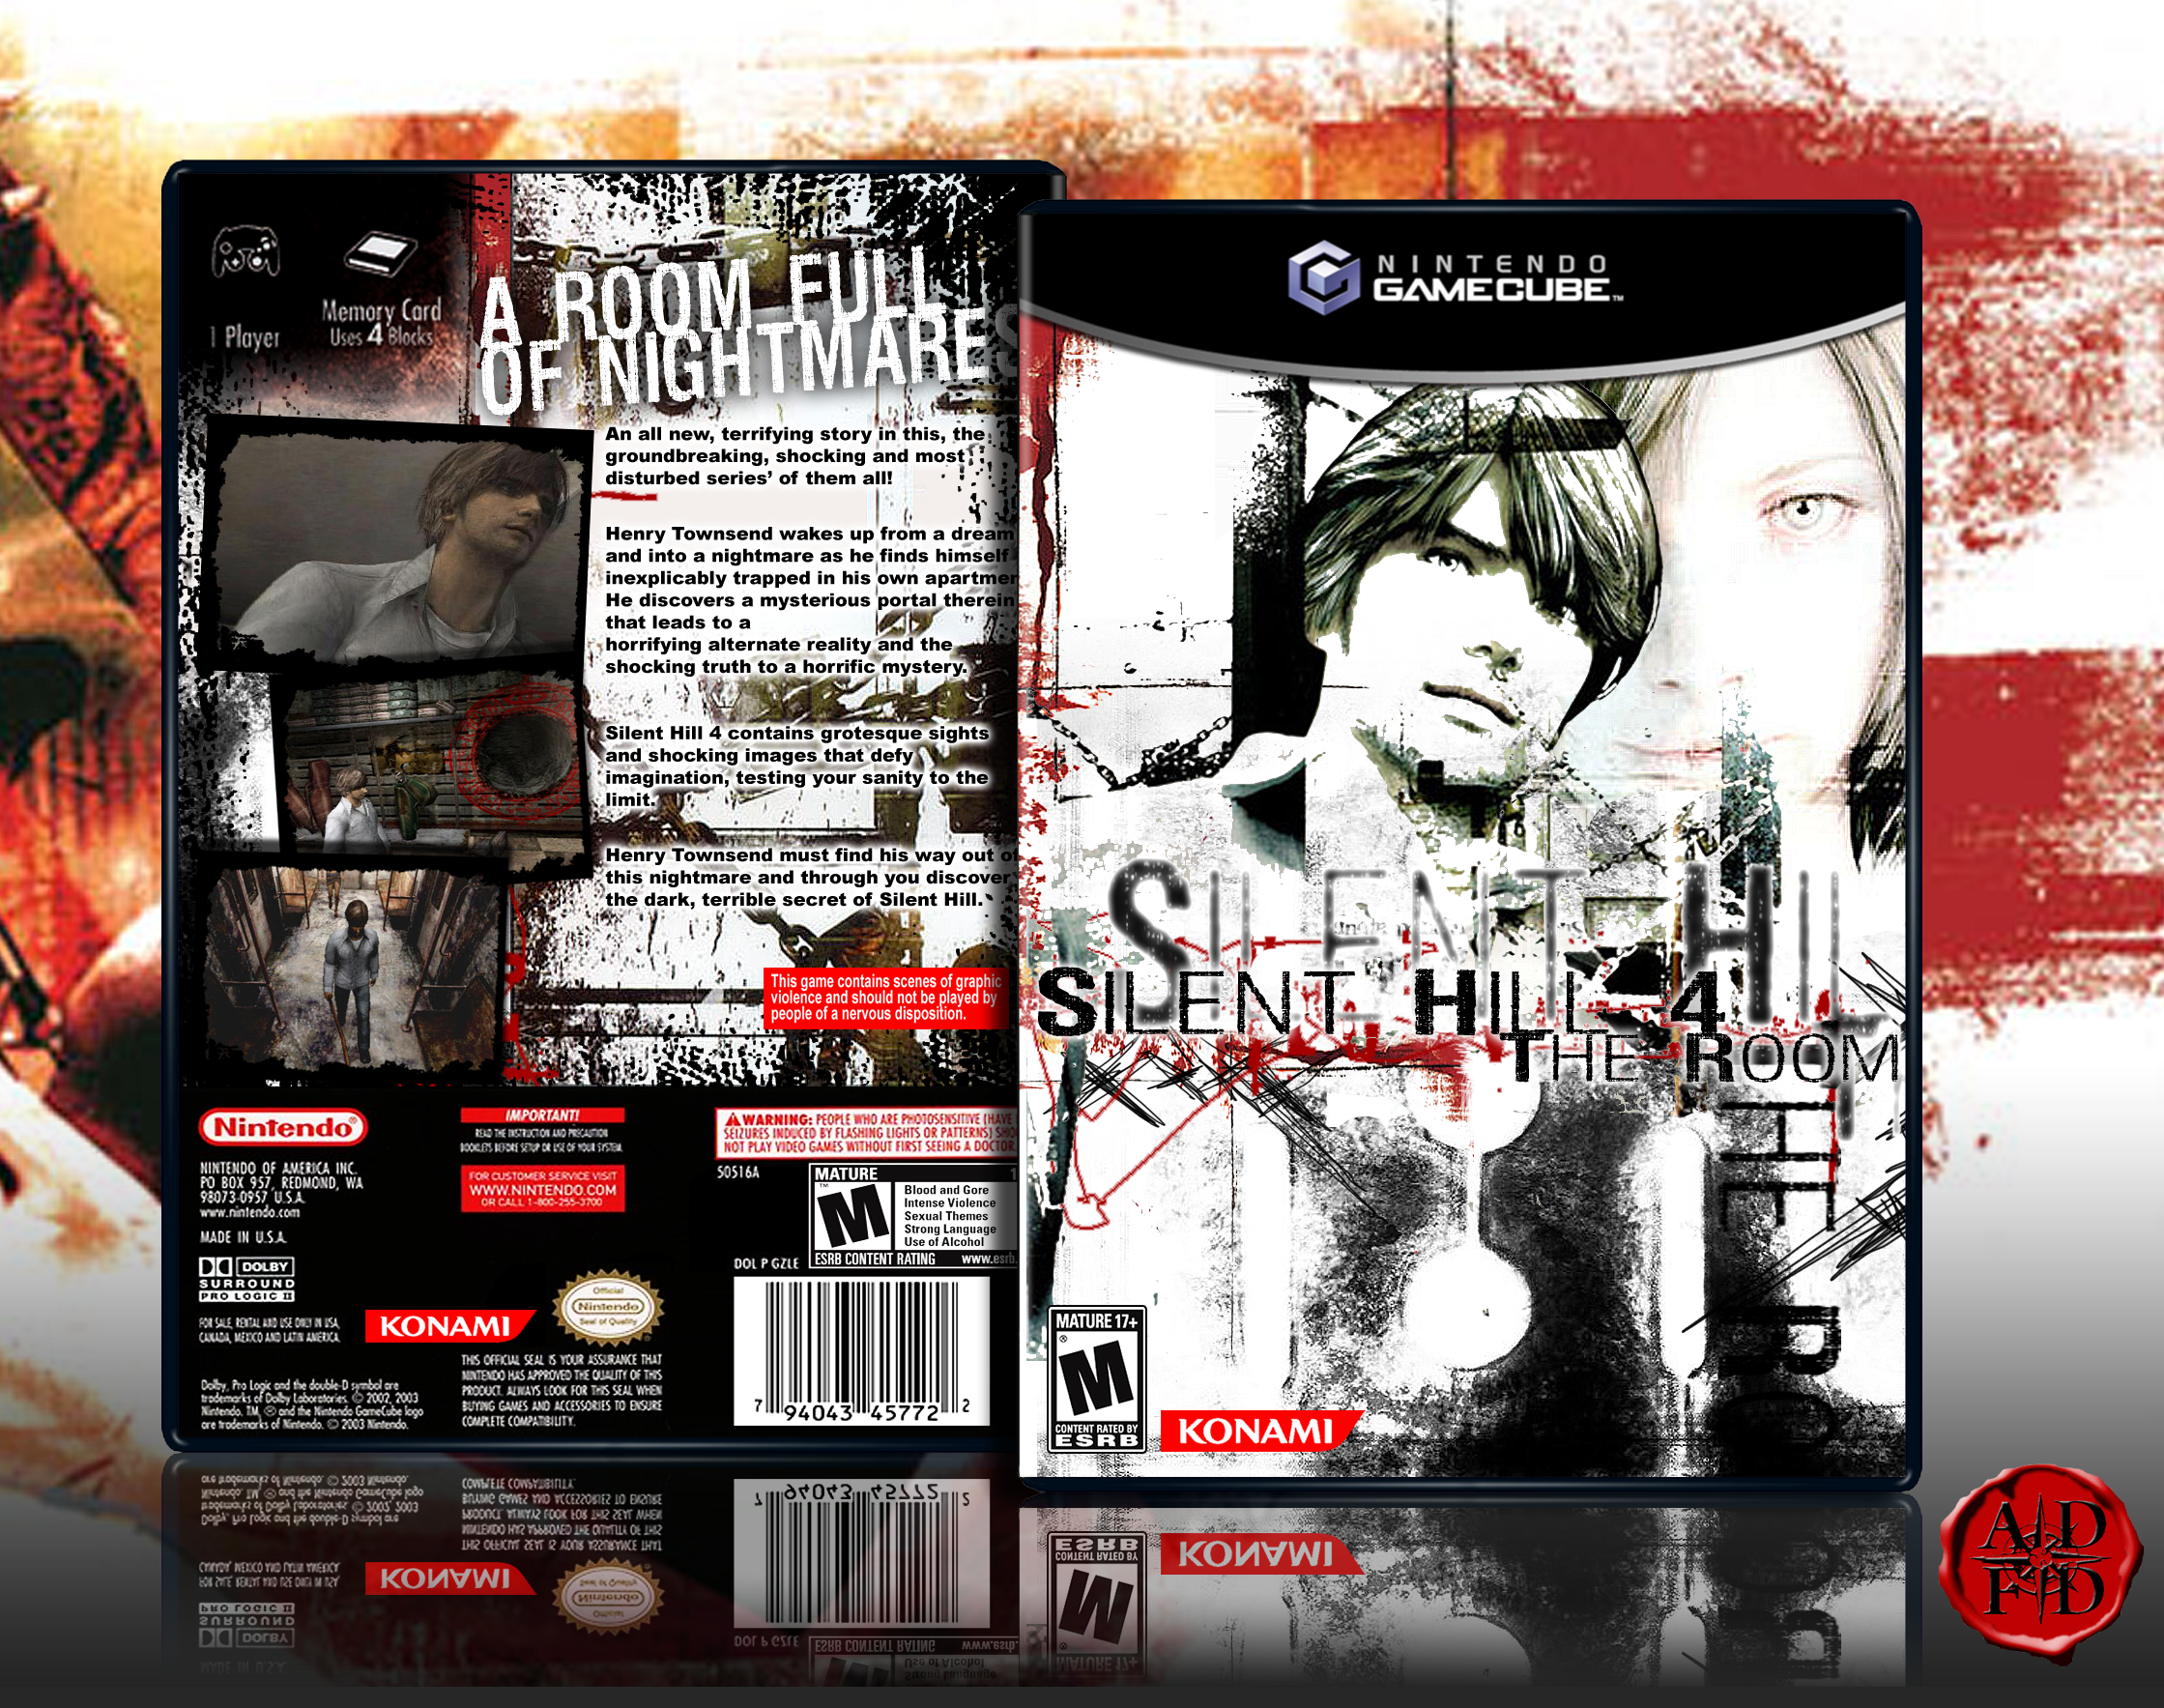 Silent Hill 4 The Room Gamecube Box Art Cover By Alldreamsfalldown